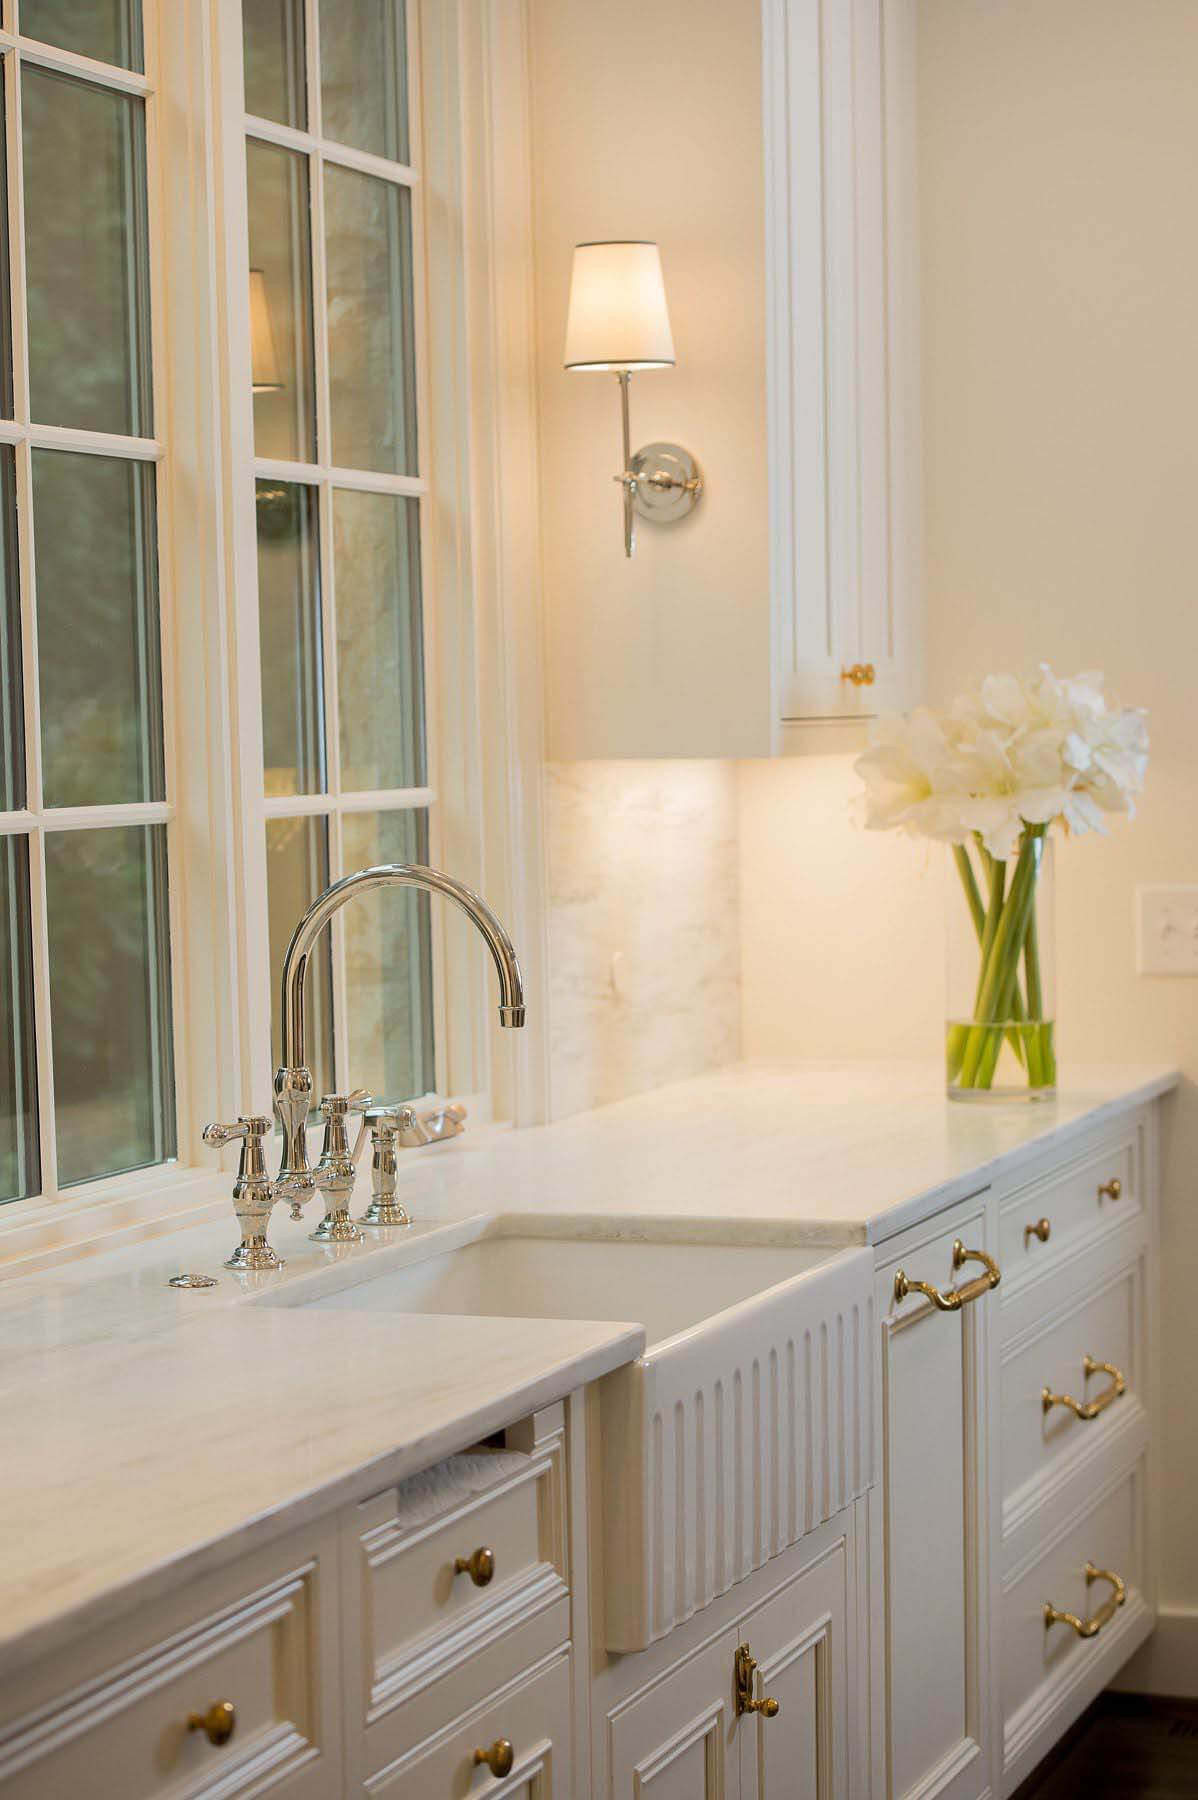 A Farmhouse sink, prep area and white cabinetry